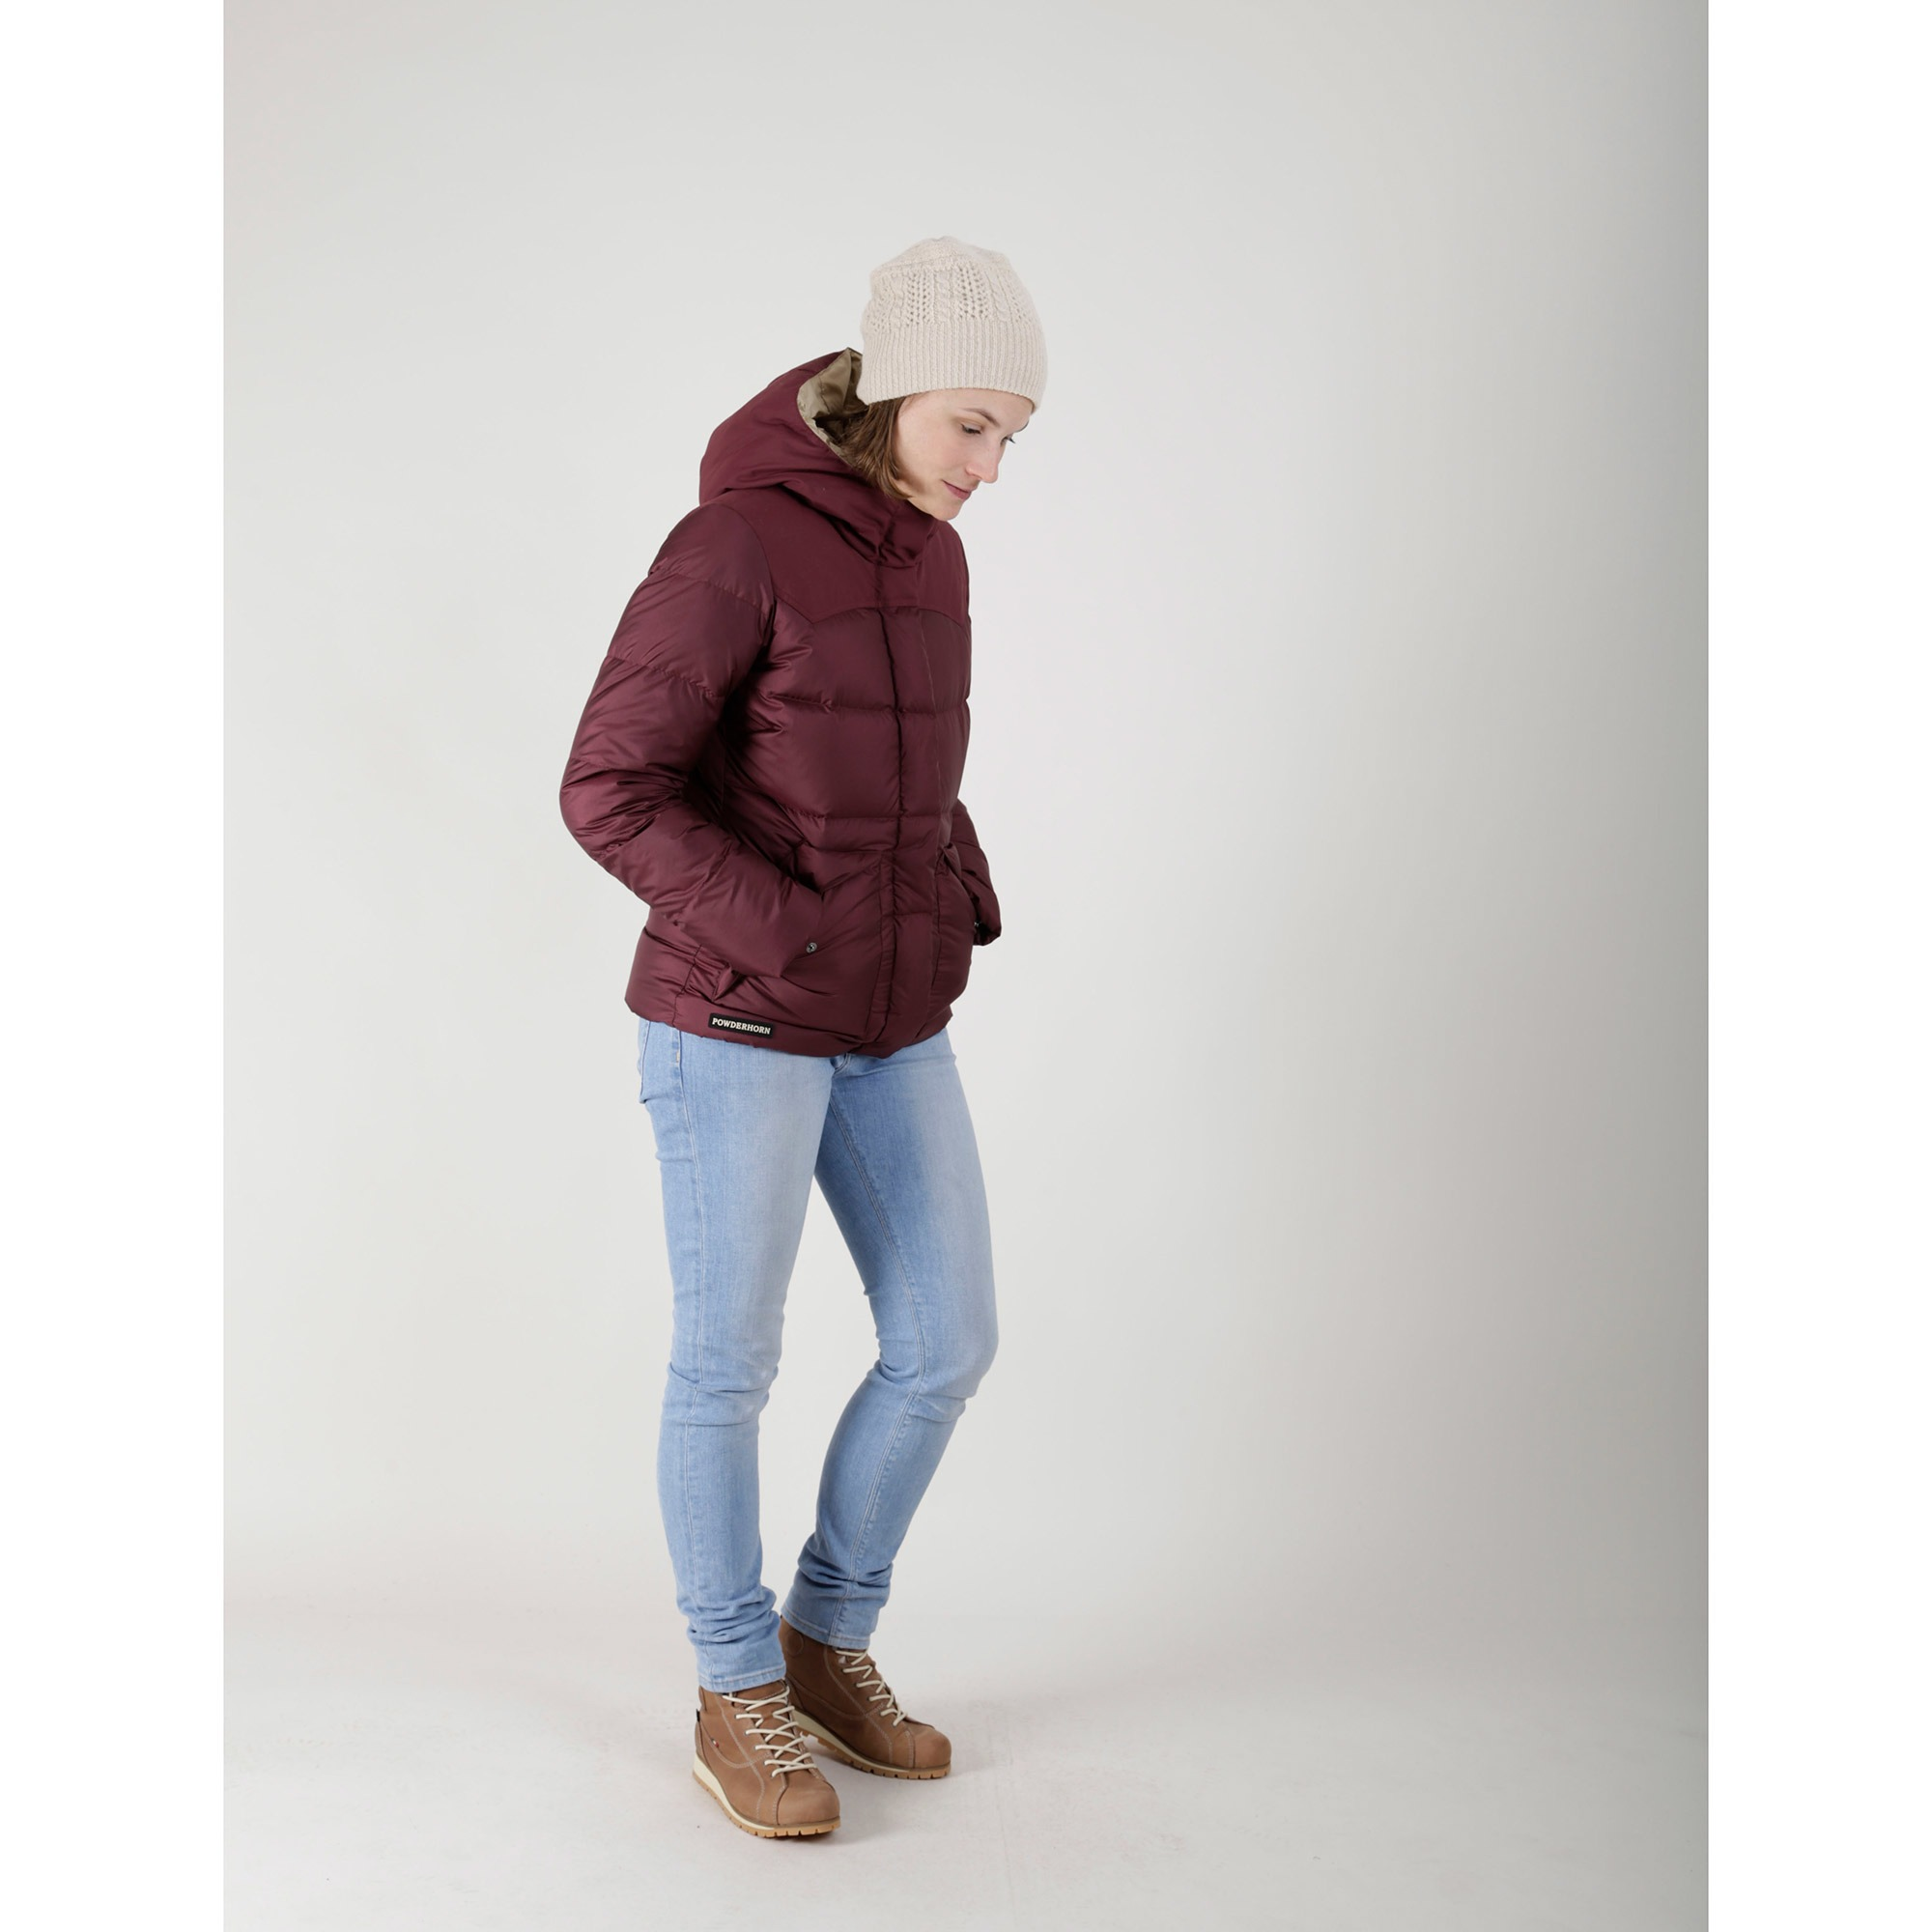 Powderhorn Jackson Shot 7 Women's Jacket